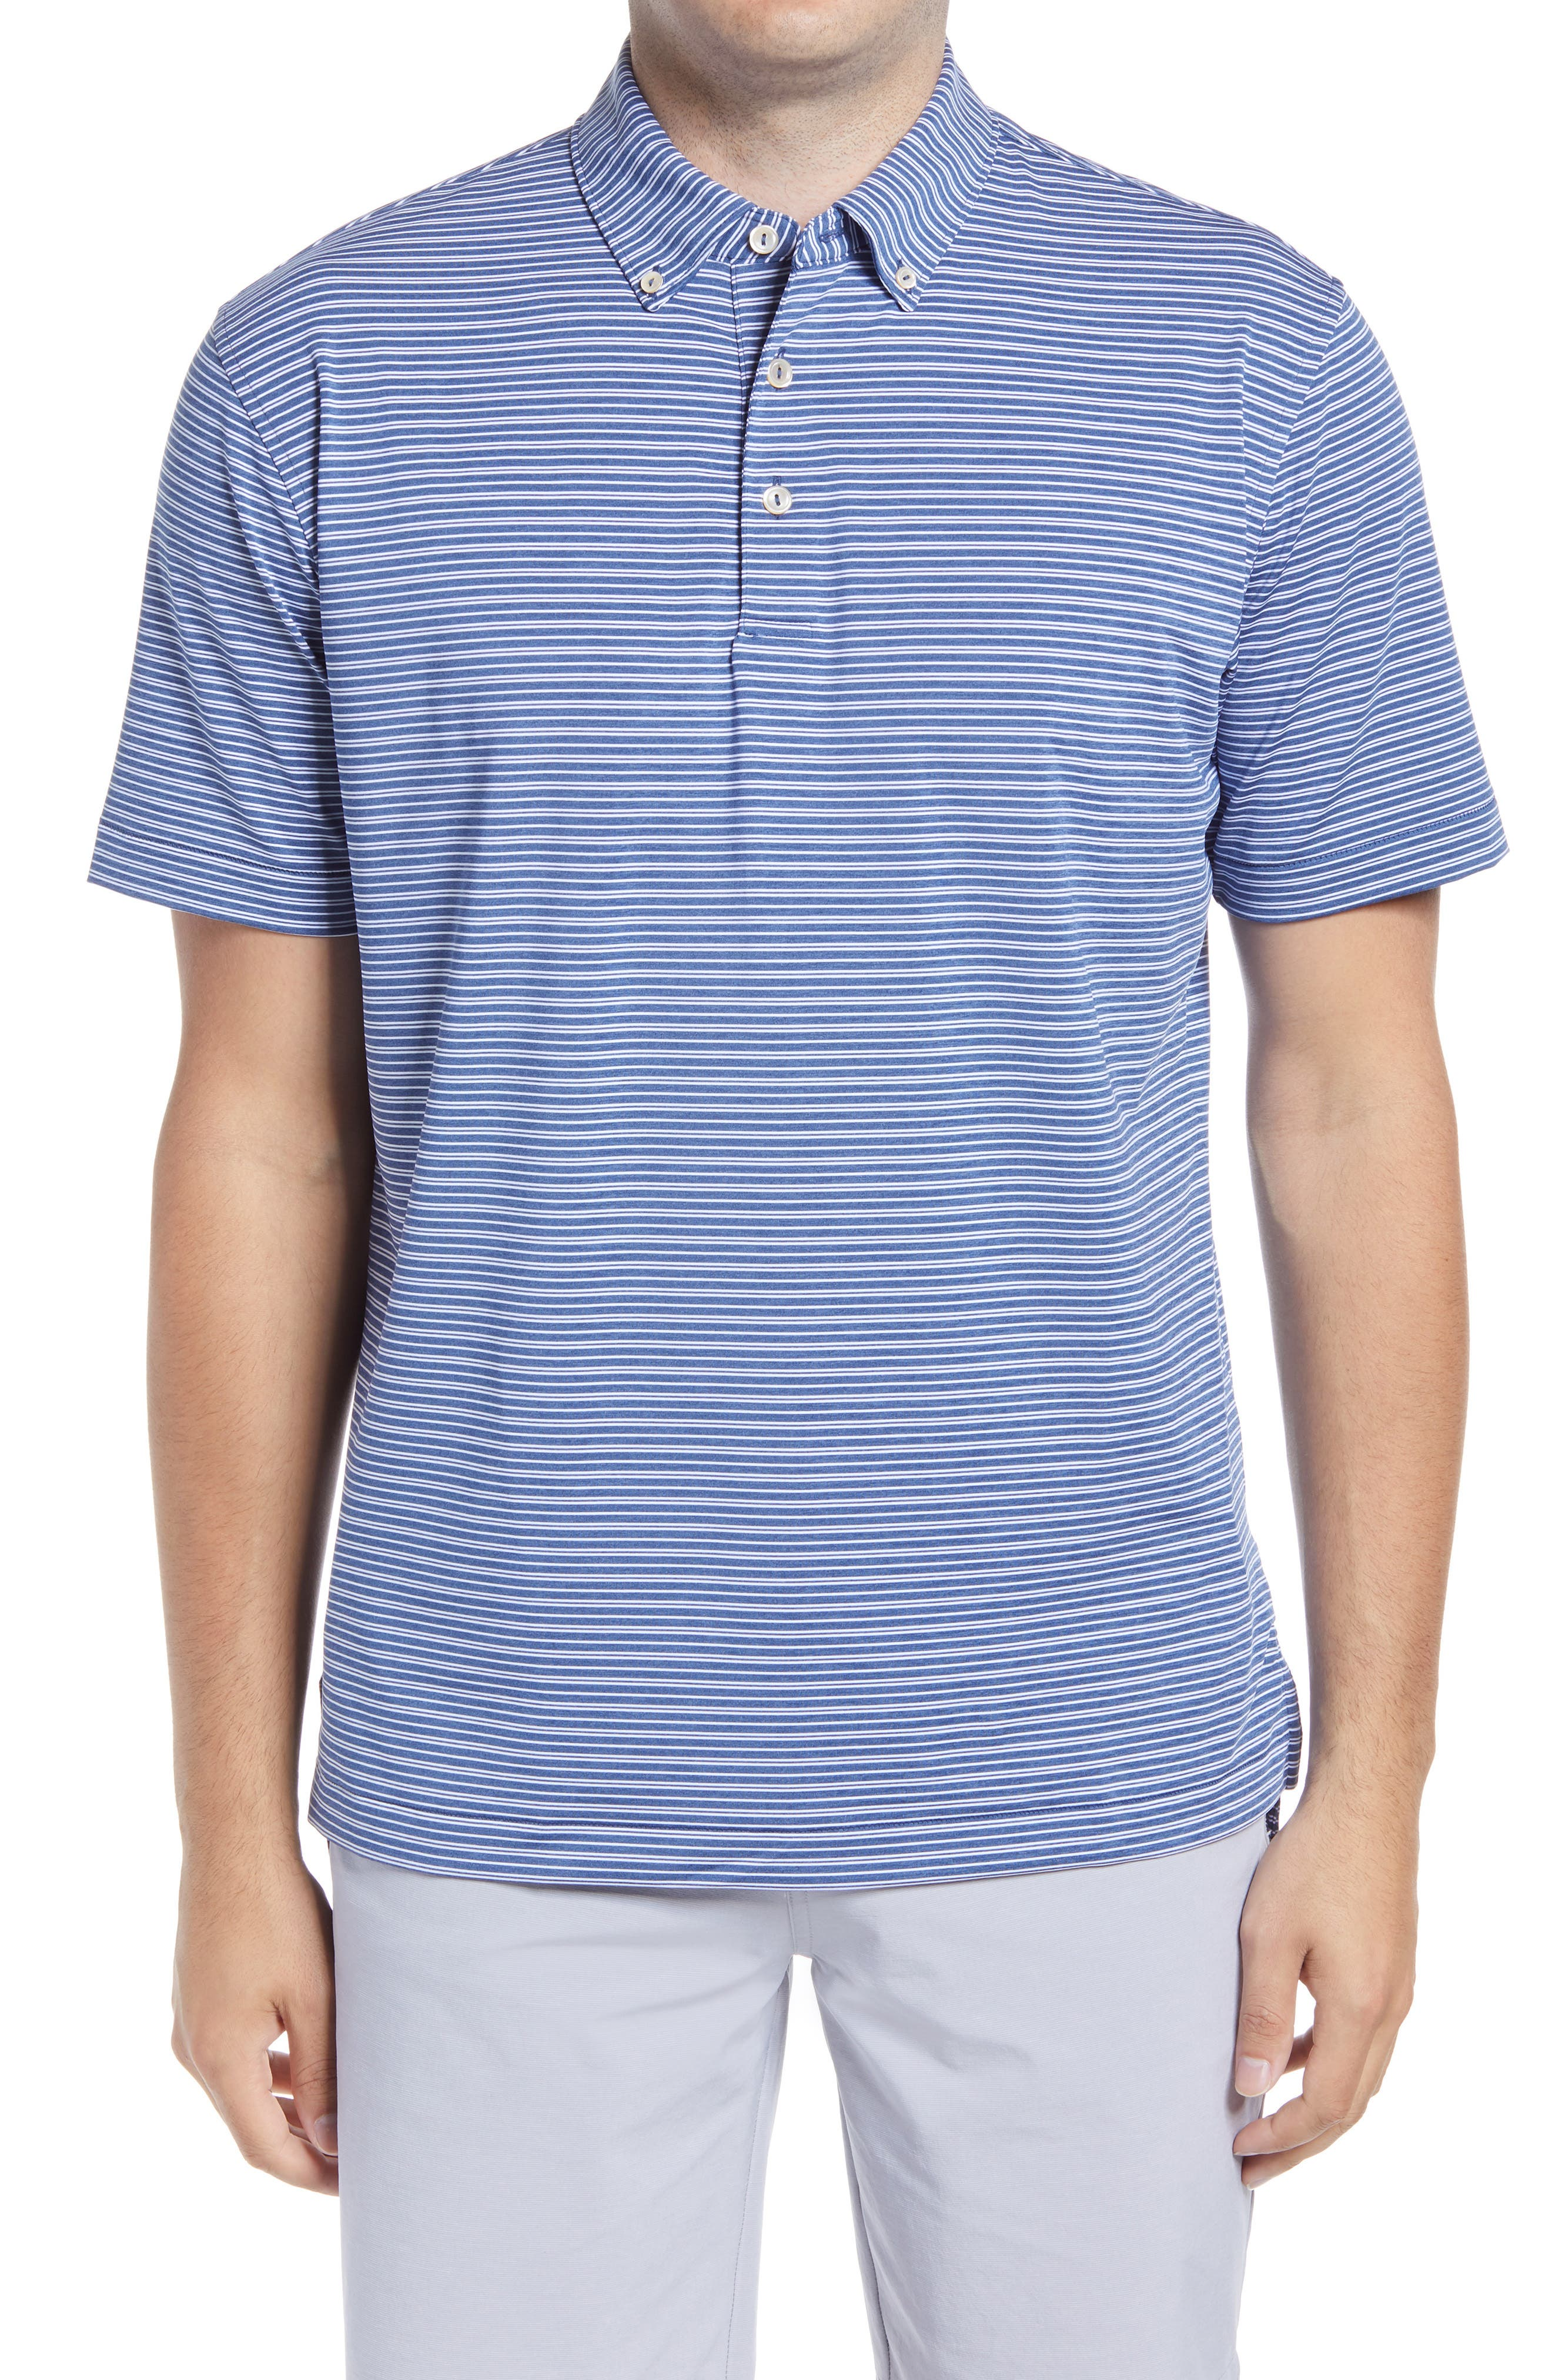 Stretchy, moisture-wicking fabric keeps up with you all day in a comfortable button-down polo that offers added sun protection and helps keep odors at bay. Style Name: Peter Millar Georgetown Stripe Button-Down Performance Polo. Style Number: 6089528. Available in stores.